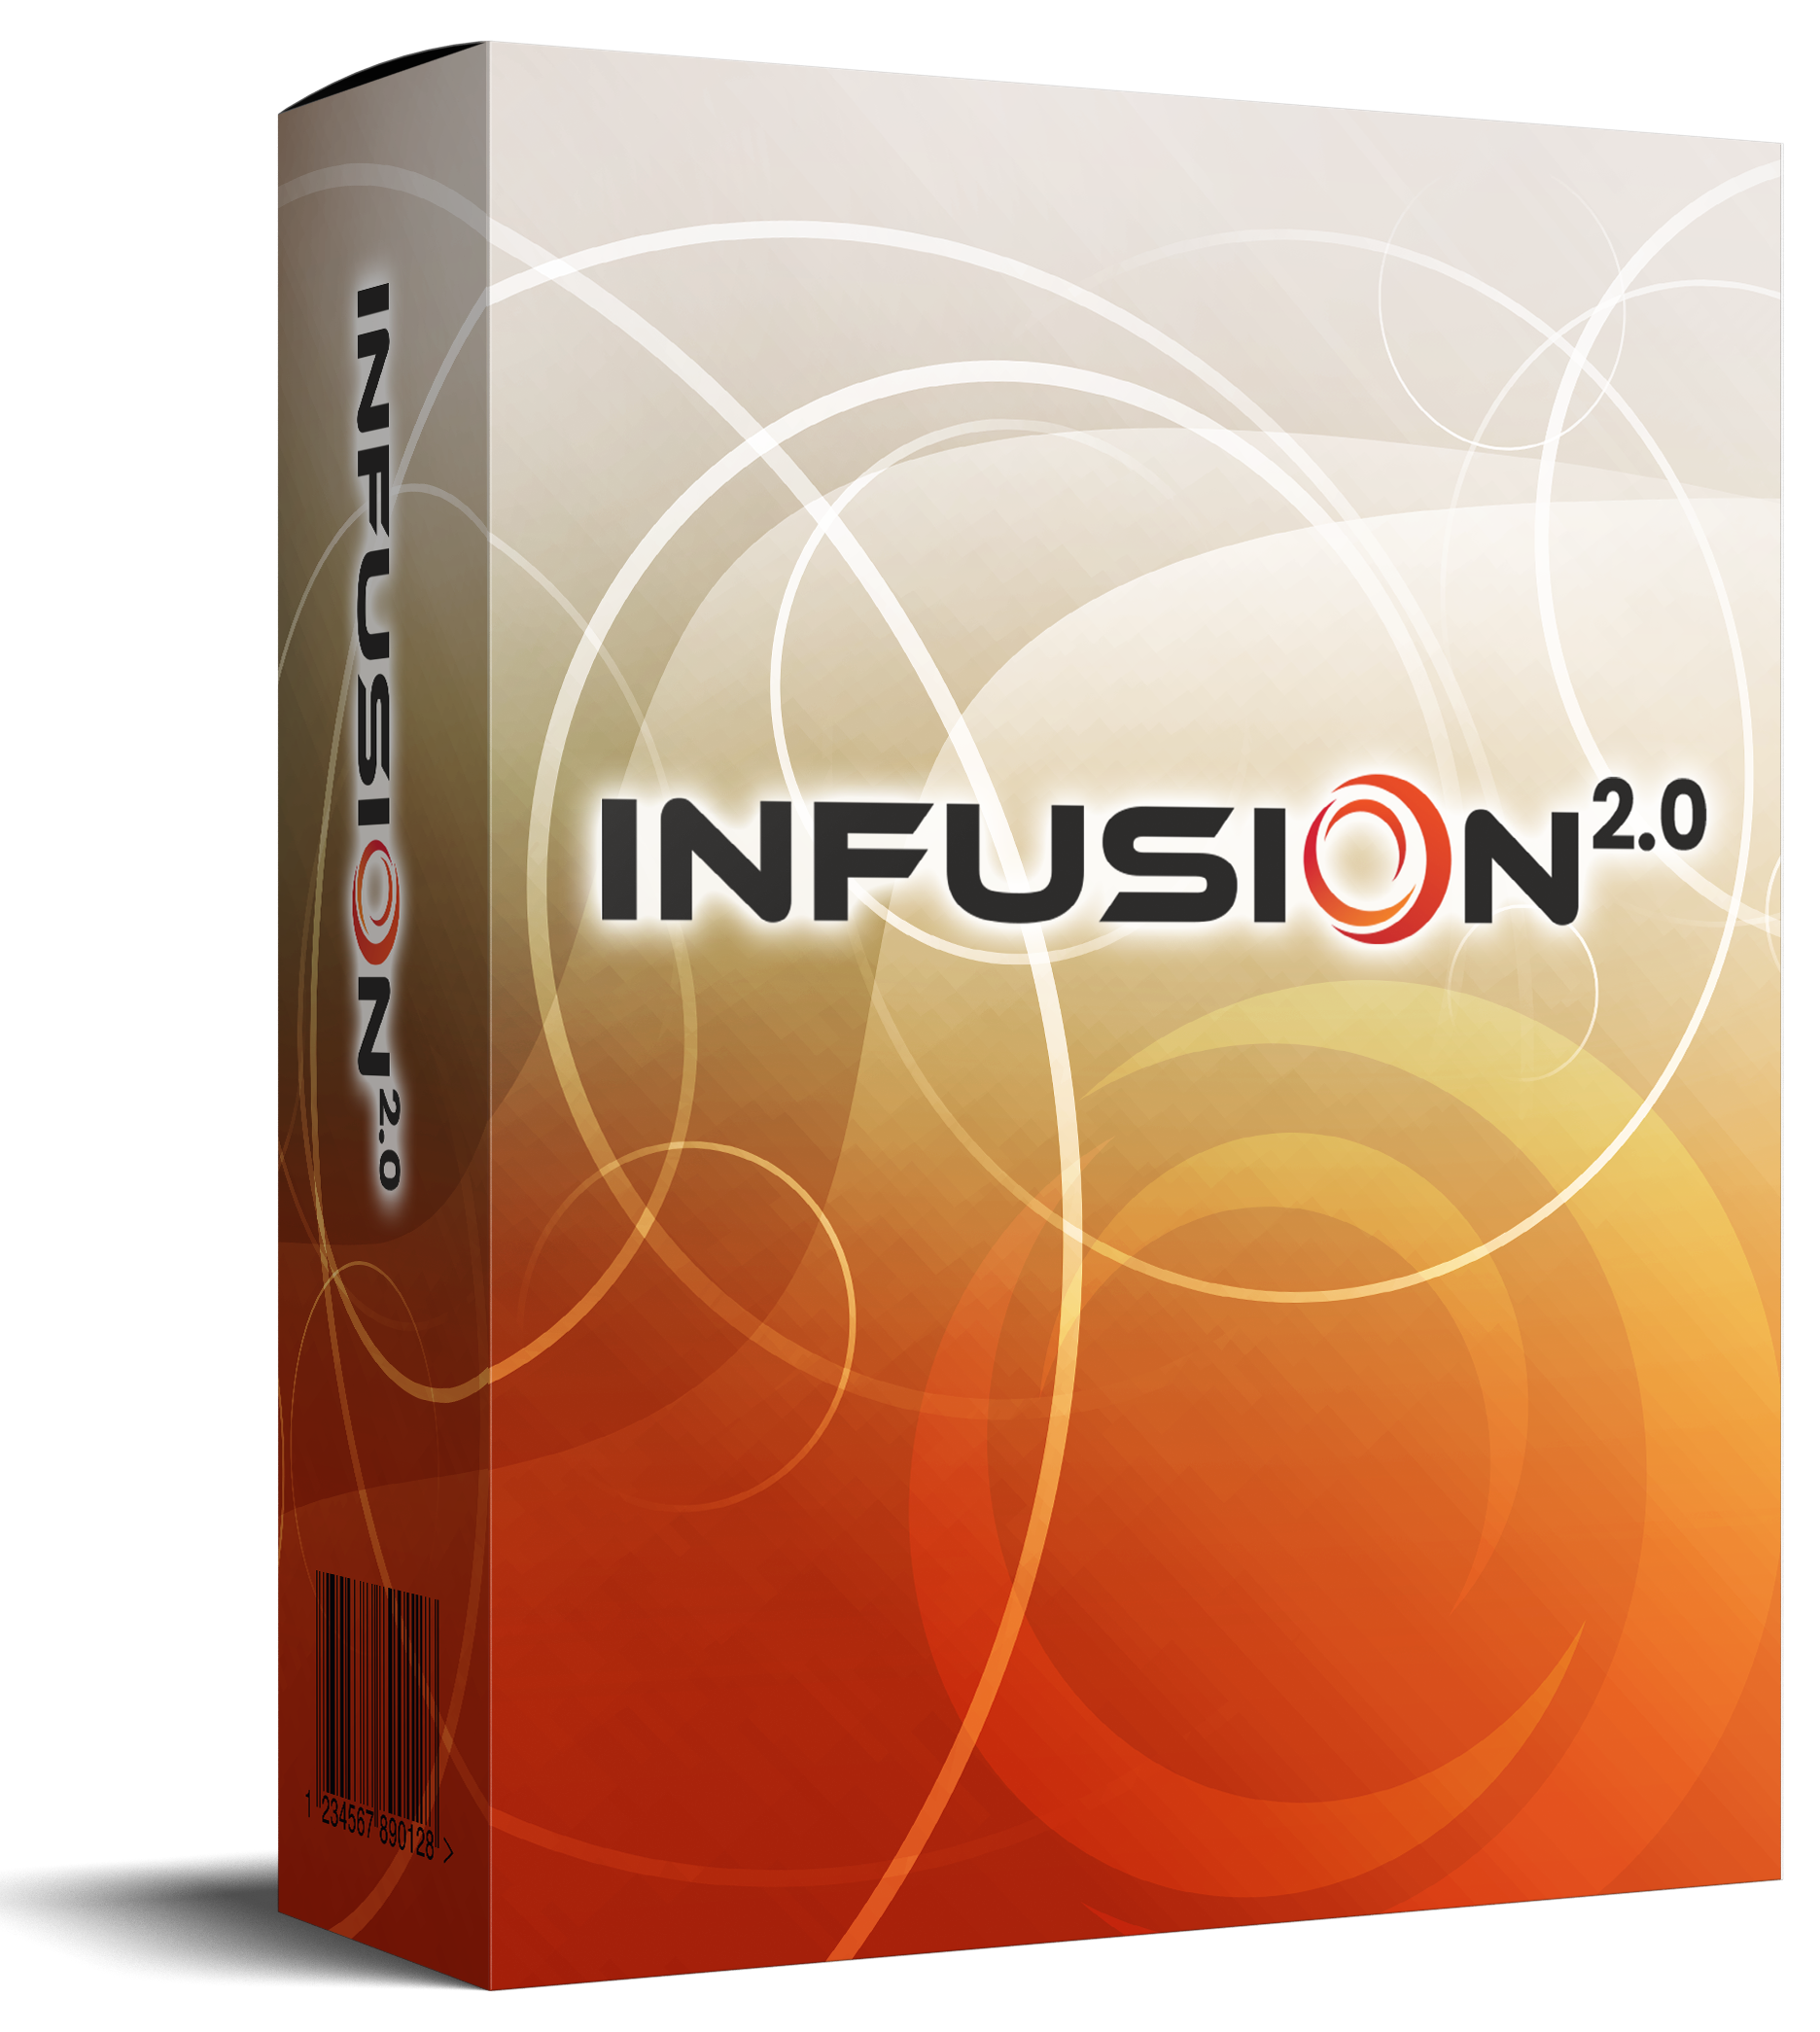 infusion 2.0 review